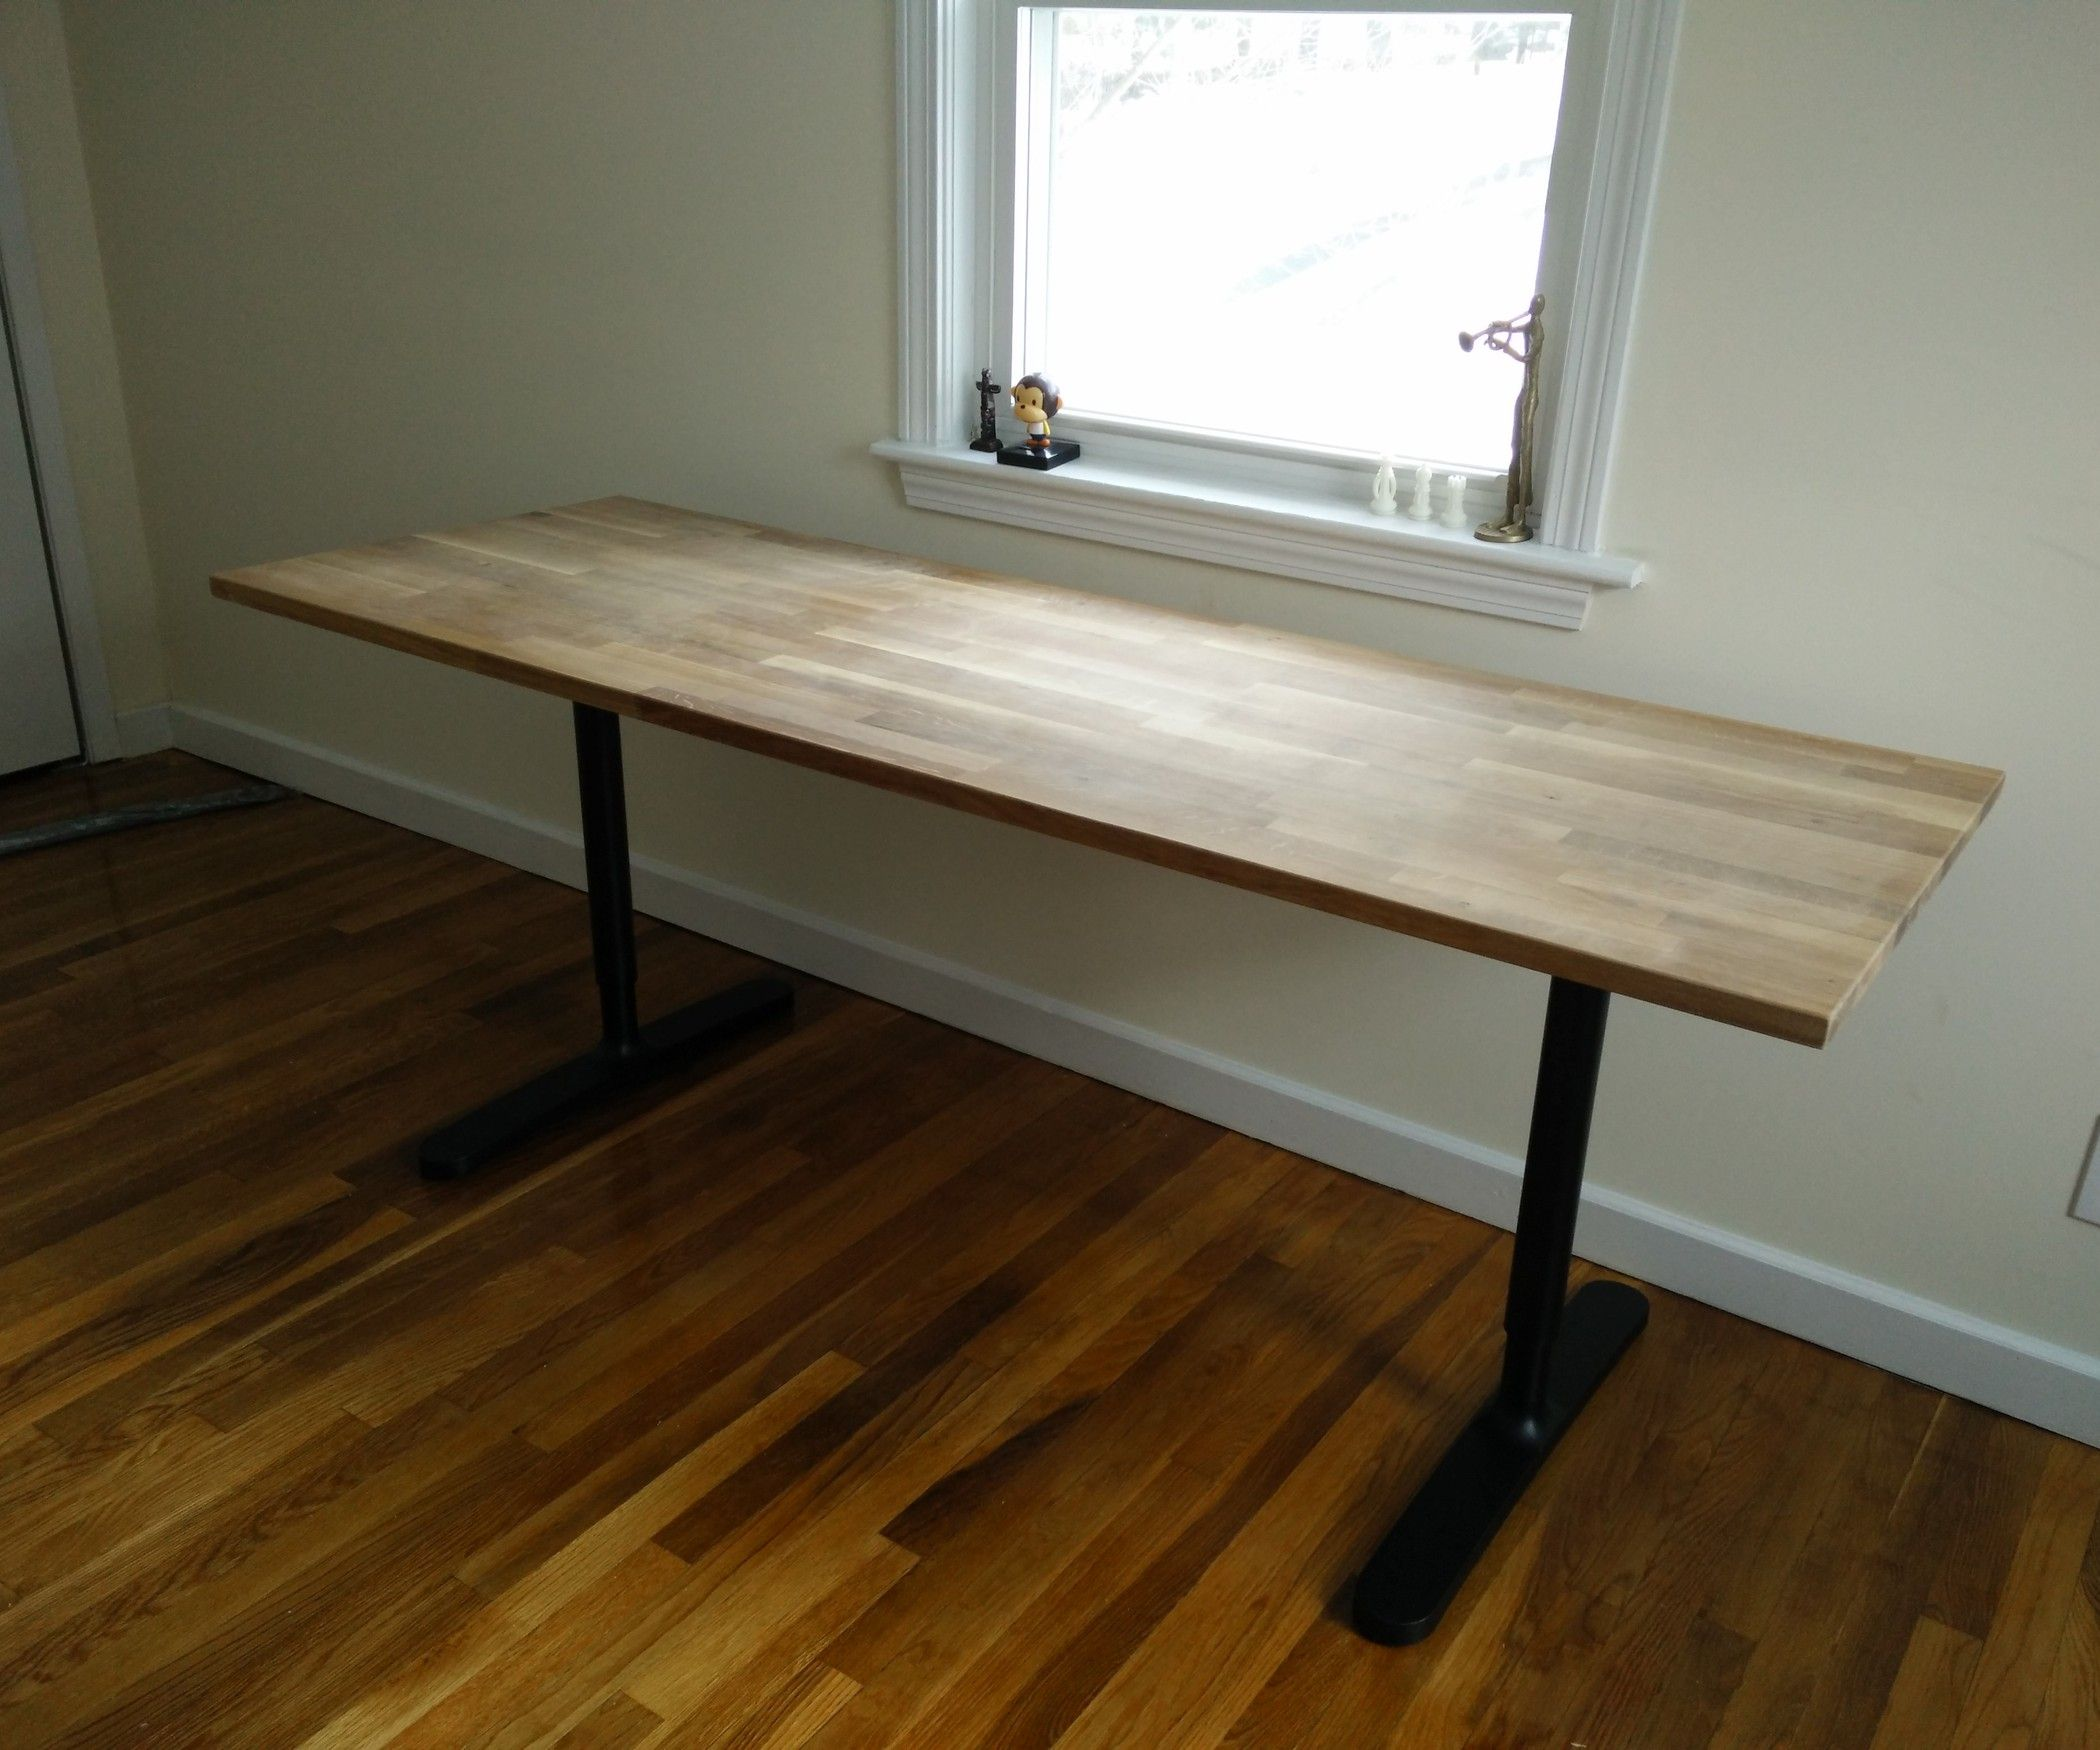 Butcher Block Countertop Table Ikea Hack Butcher Block Tables Ikea Desk And Block Table